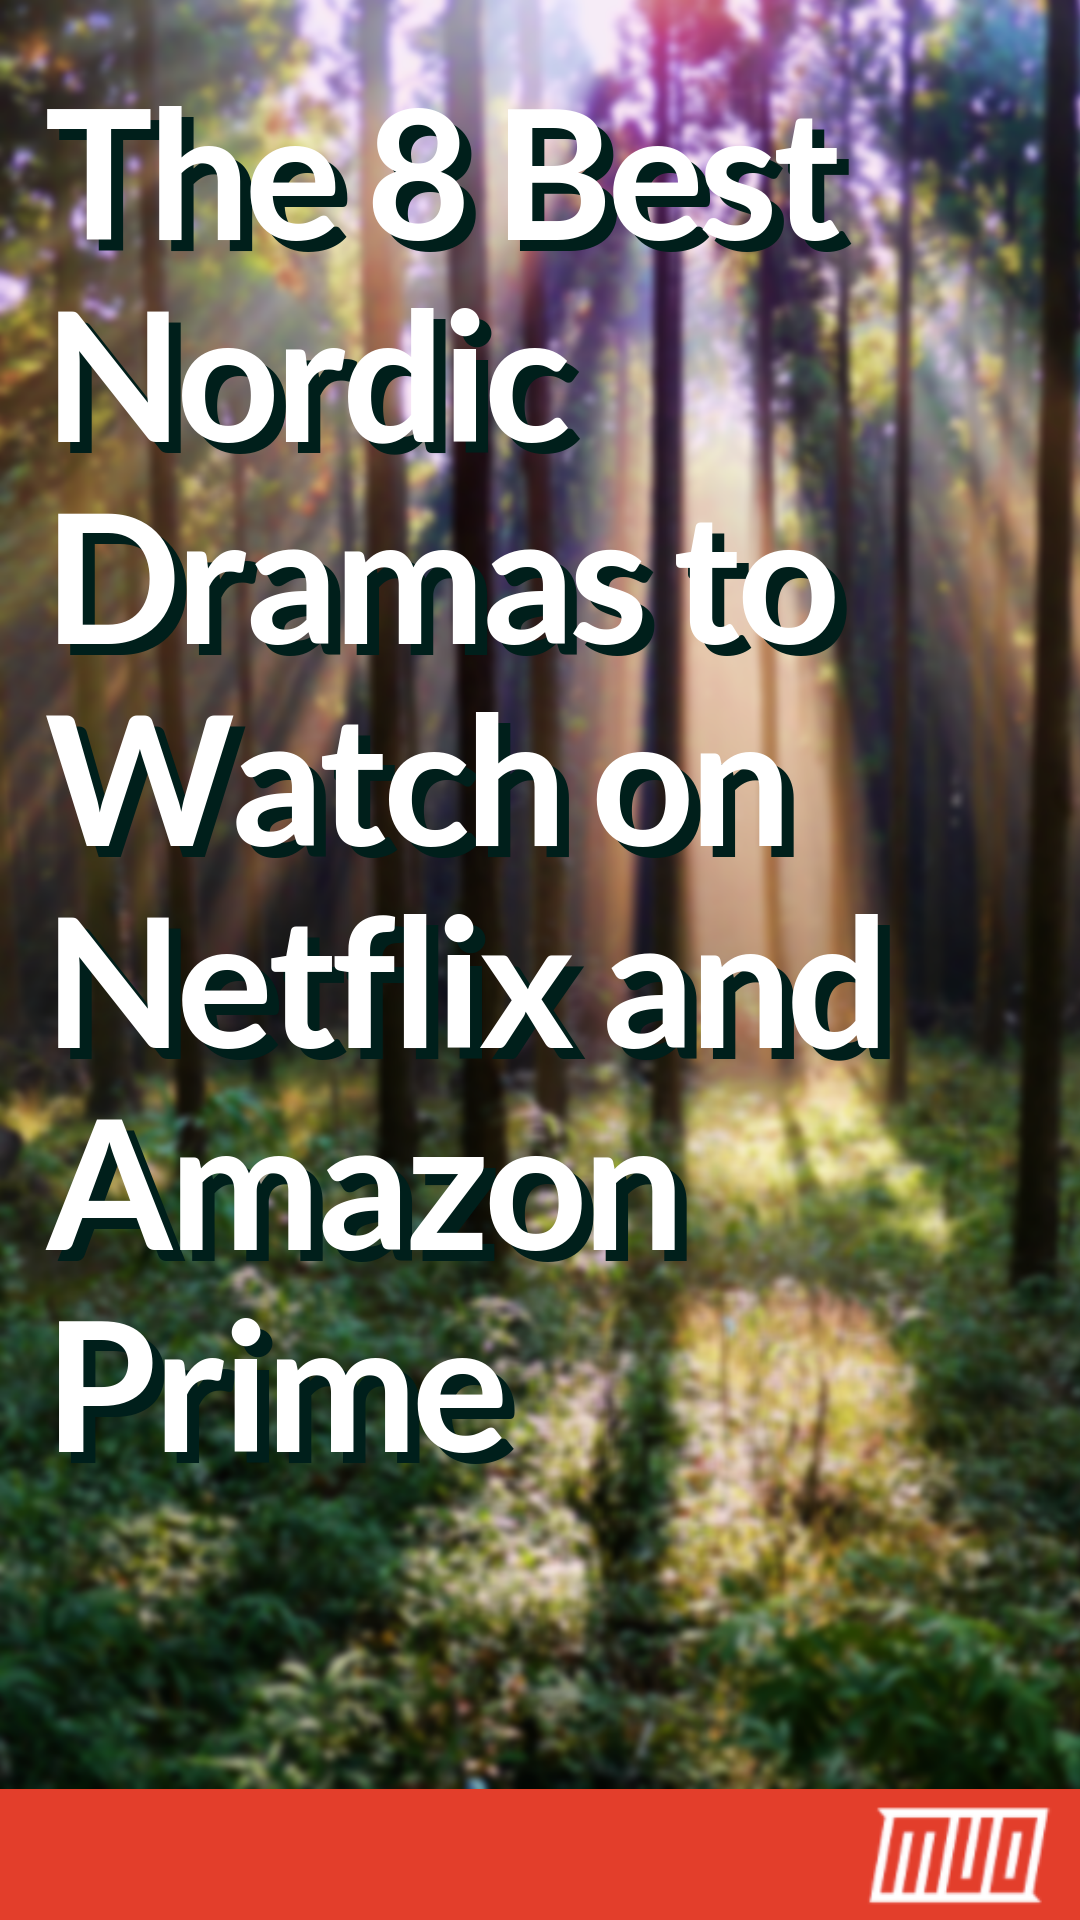 The 8 Best Nordic Noir Dramas On Netflix And Amazon Prime Amazon Prime Tv Shows Netflix Amazon Movies